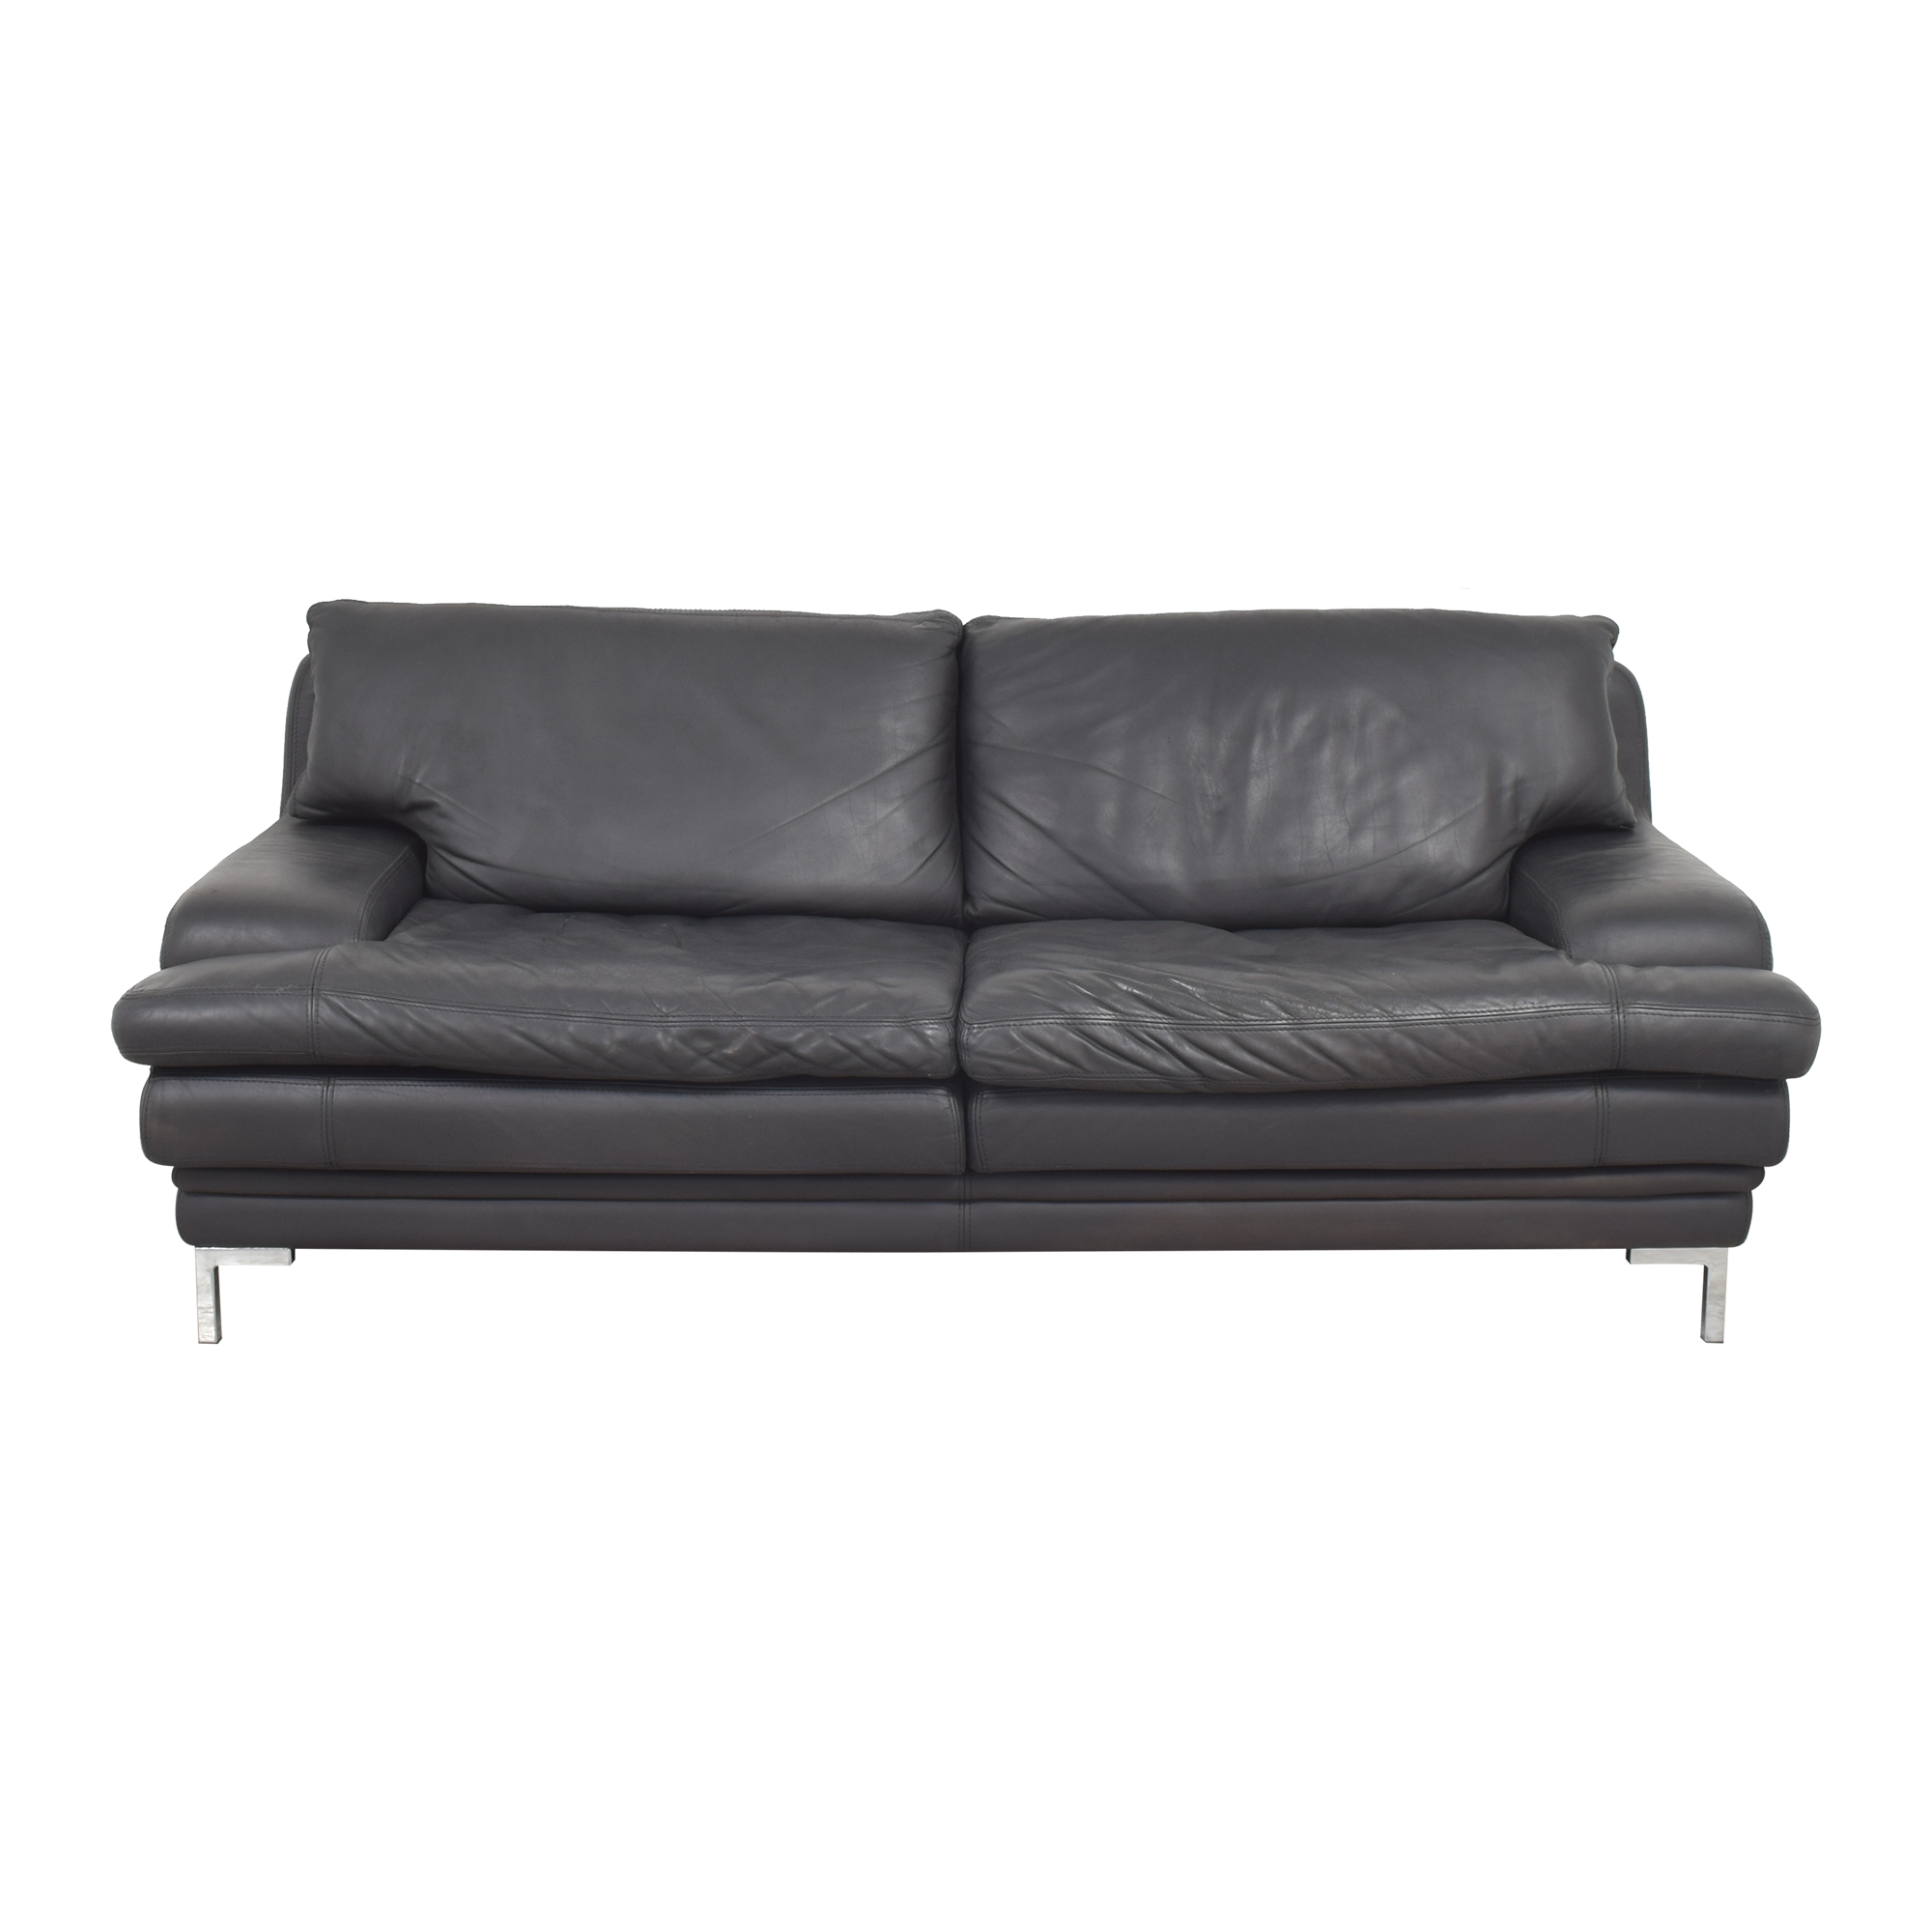 Roche Bobois Roche Bobois Two Cushion Sofa price